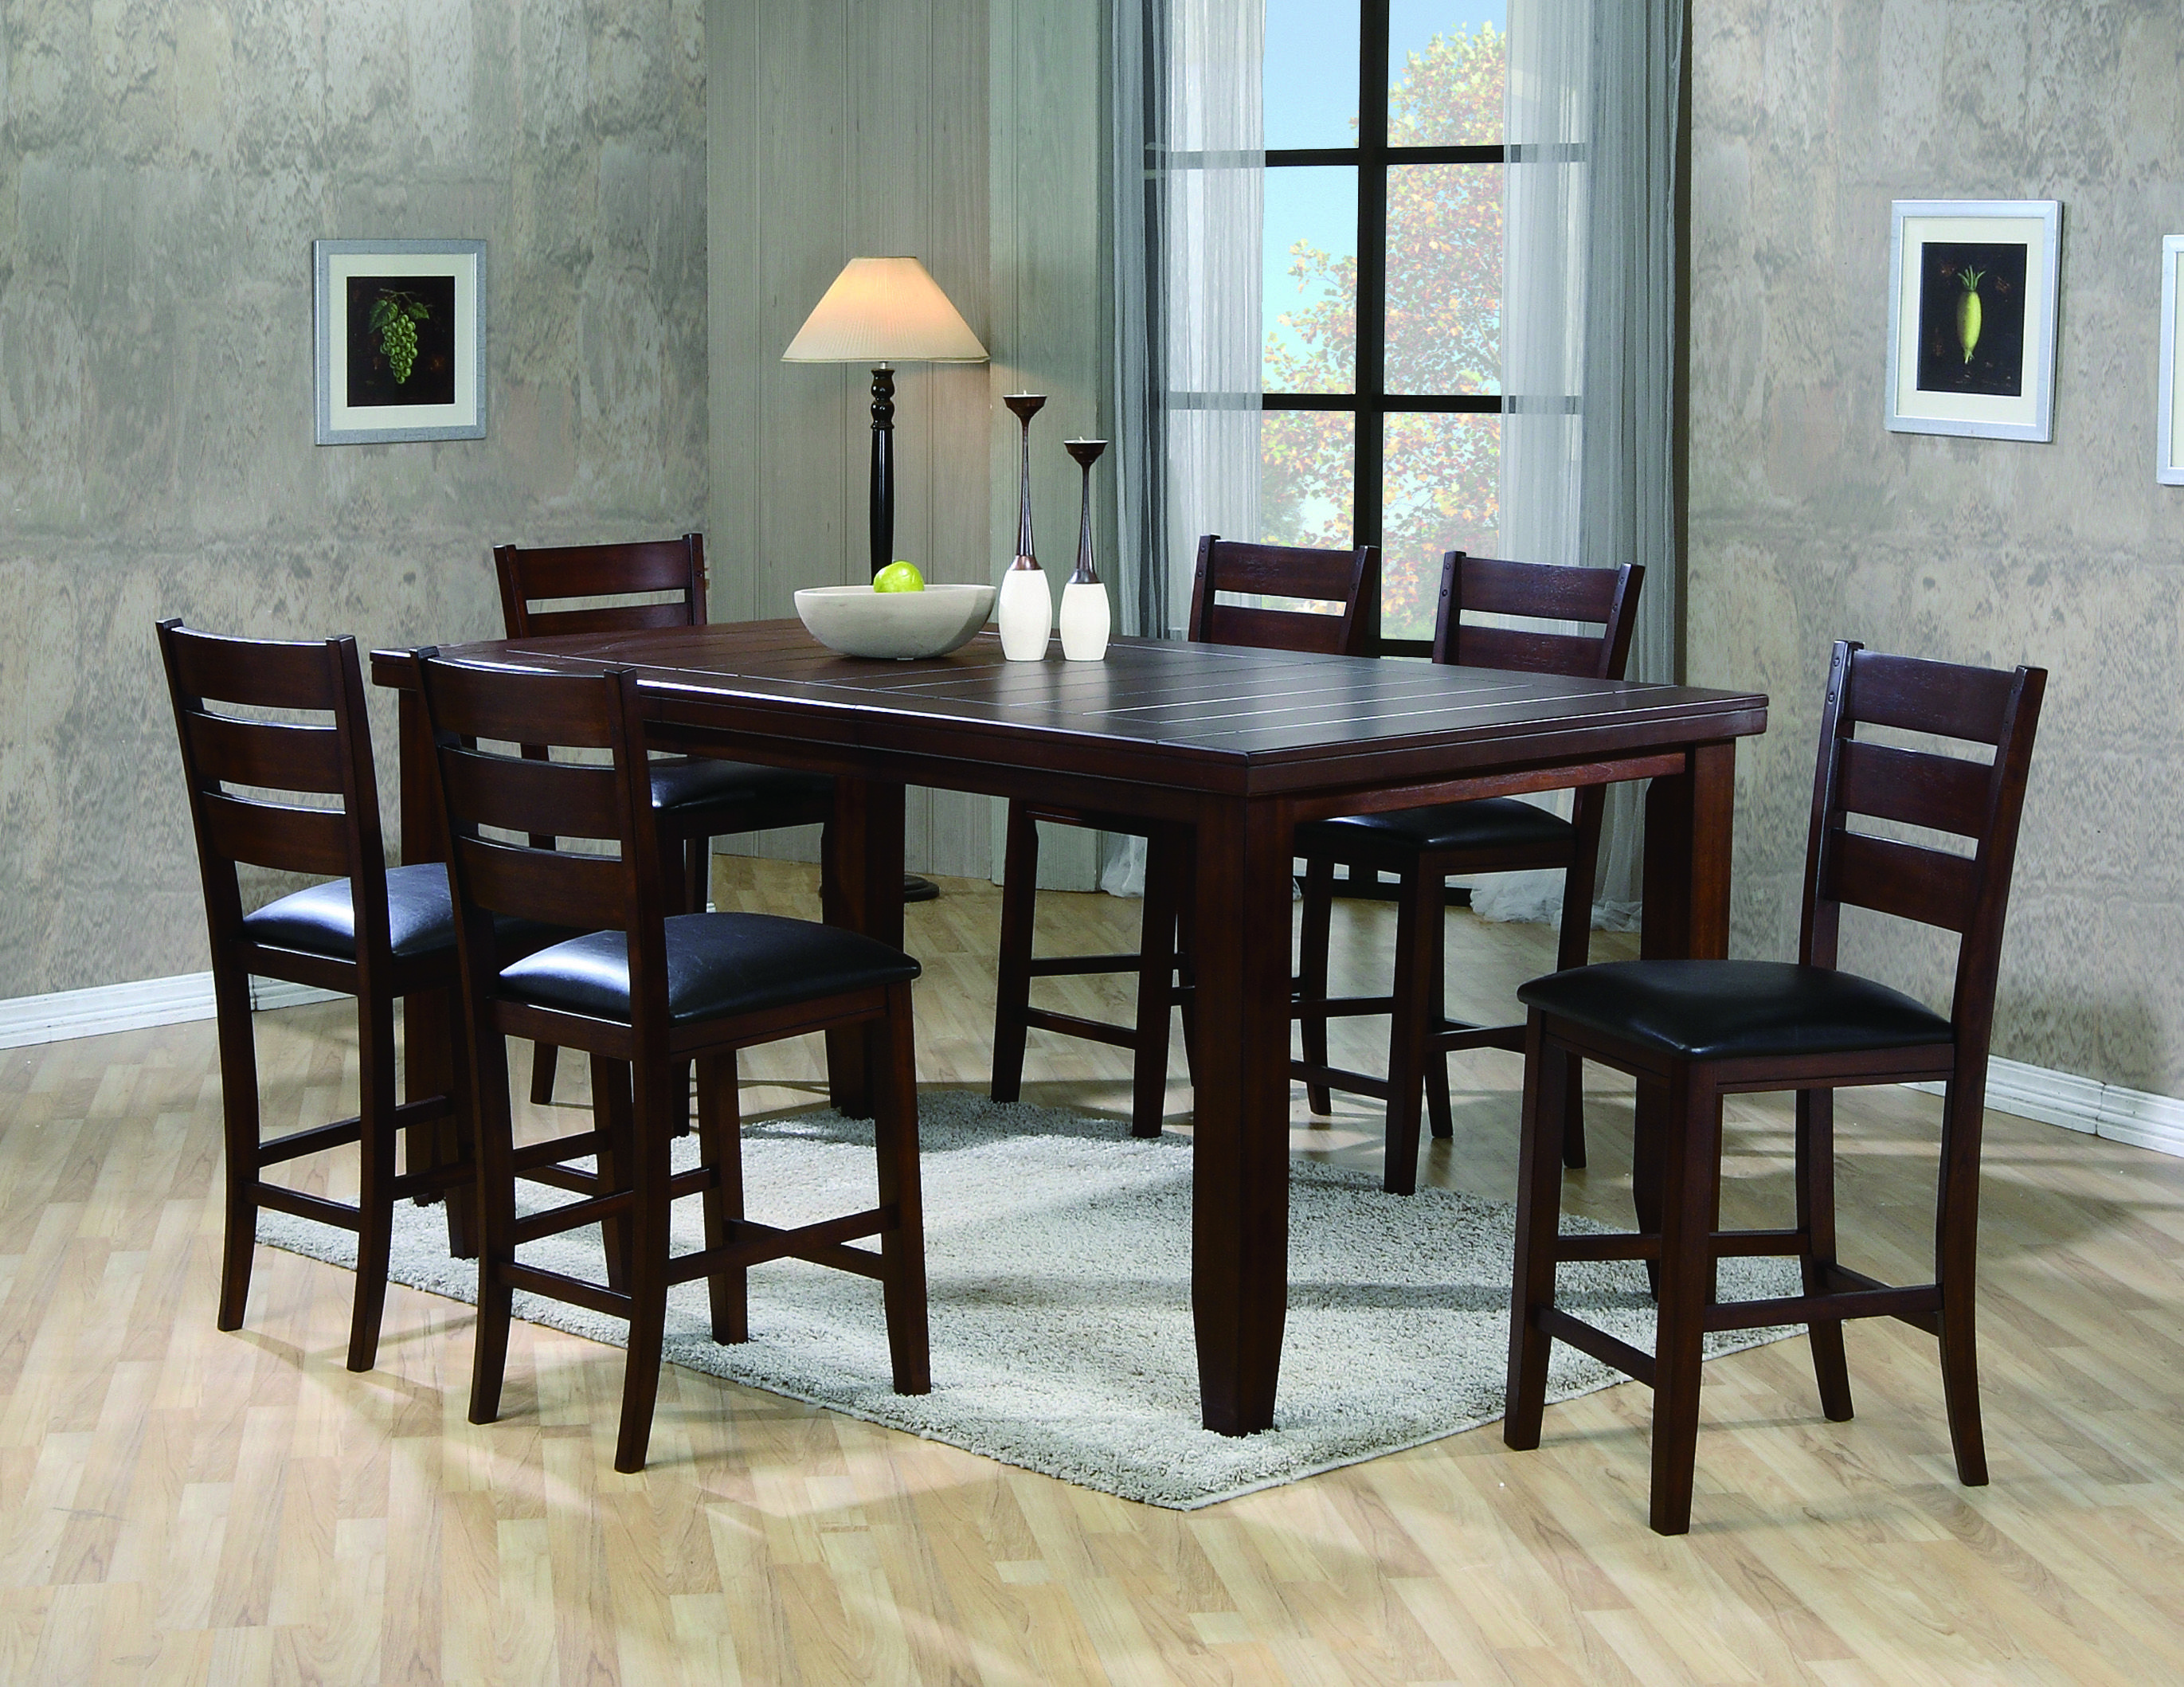 crown mark bardstow counter height table and 6 chairs. this